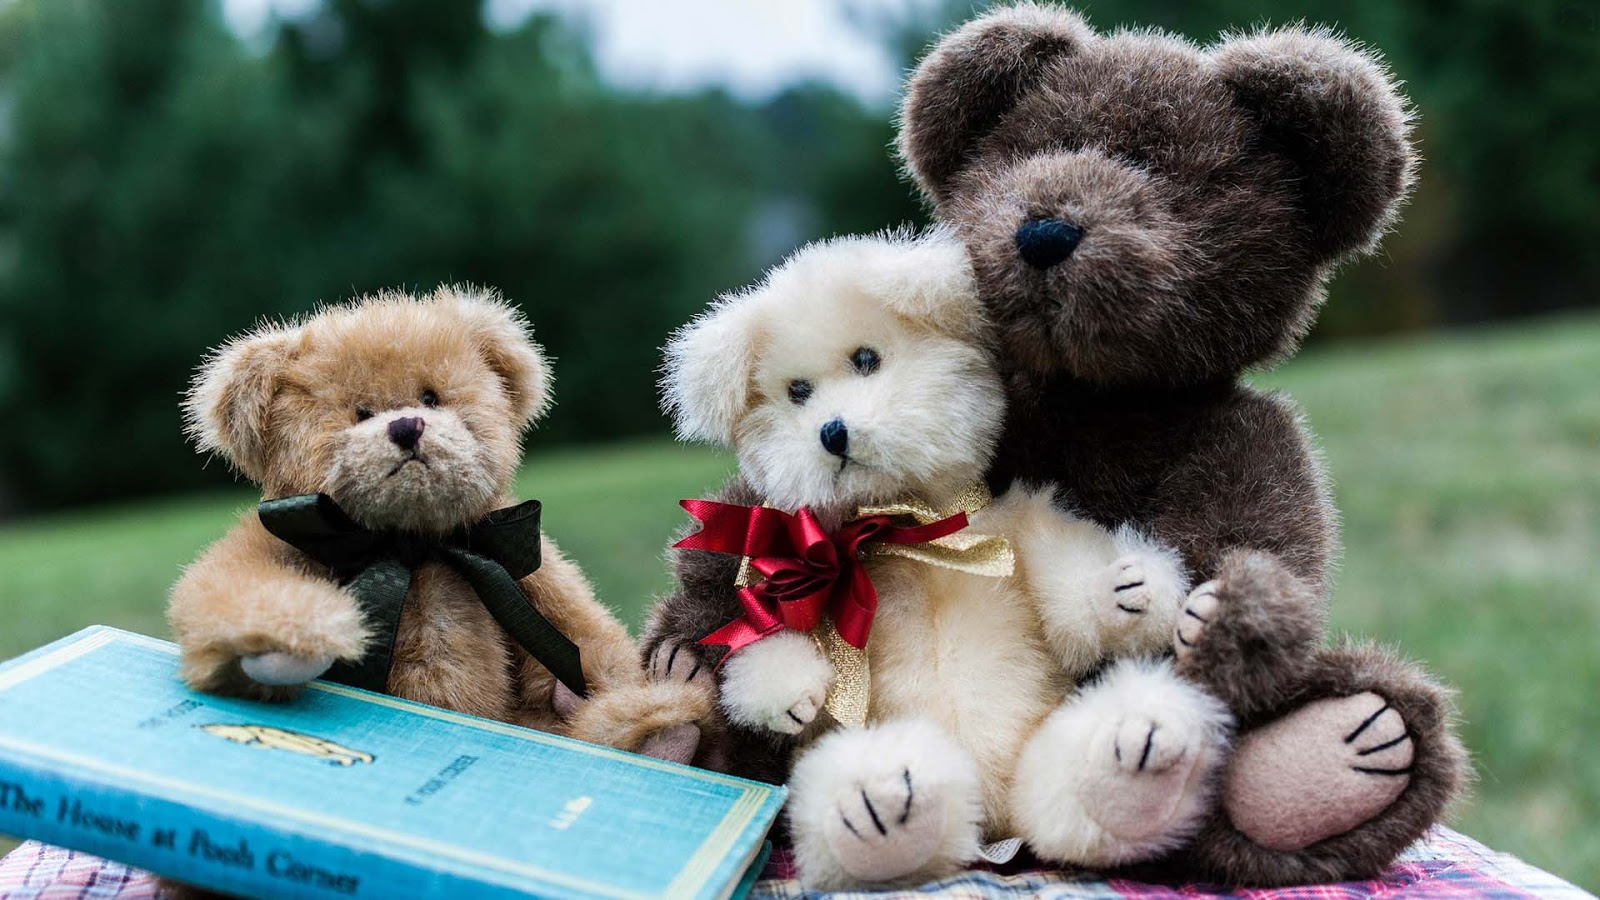 cute teddy bear wallpapers for little kids and children pixhome 1600x900